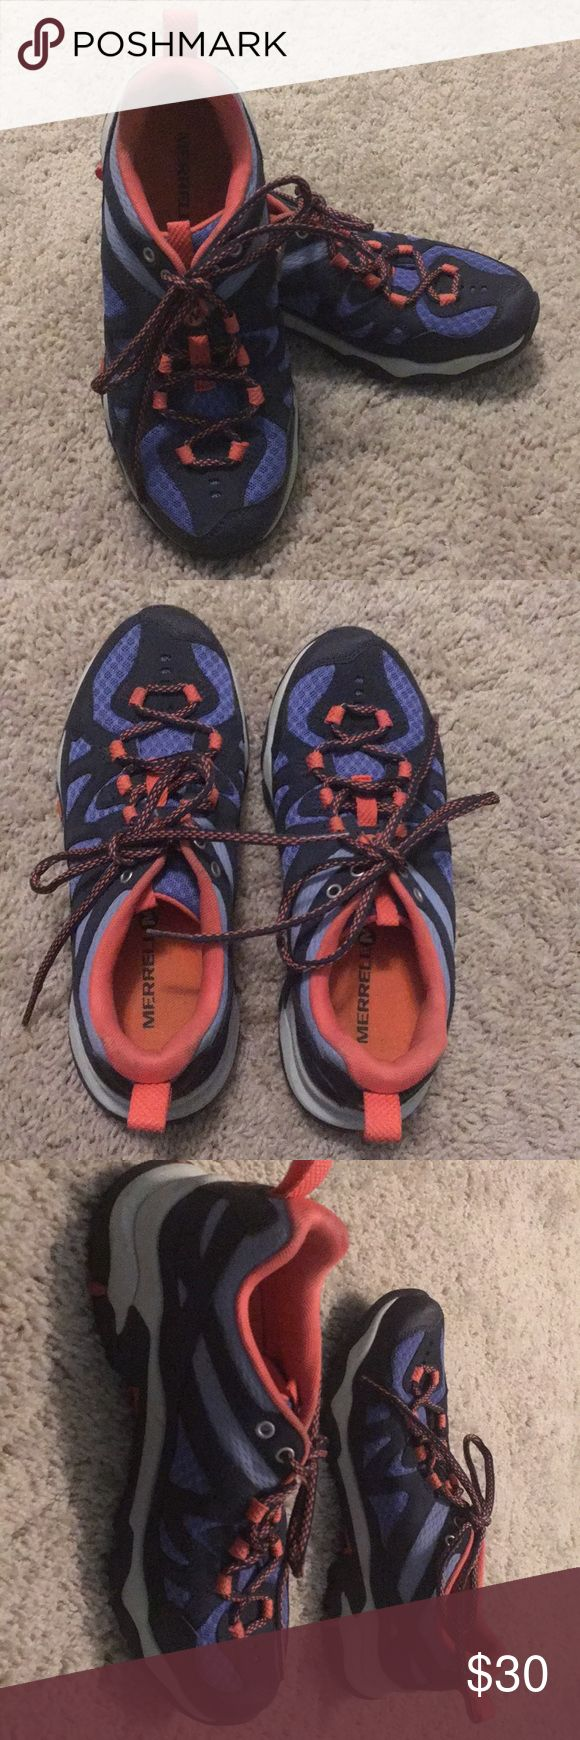 MERREL shoes MERREL hiking shoes featuring sticky rubber soles. Like new condition. Super small and barely noticeable dirt mark on back left heel (see photo) that would most likely come of if washed. Merrell Shoes Athletic Shoes